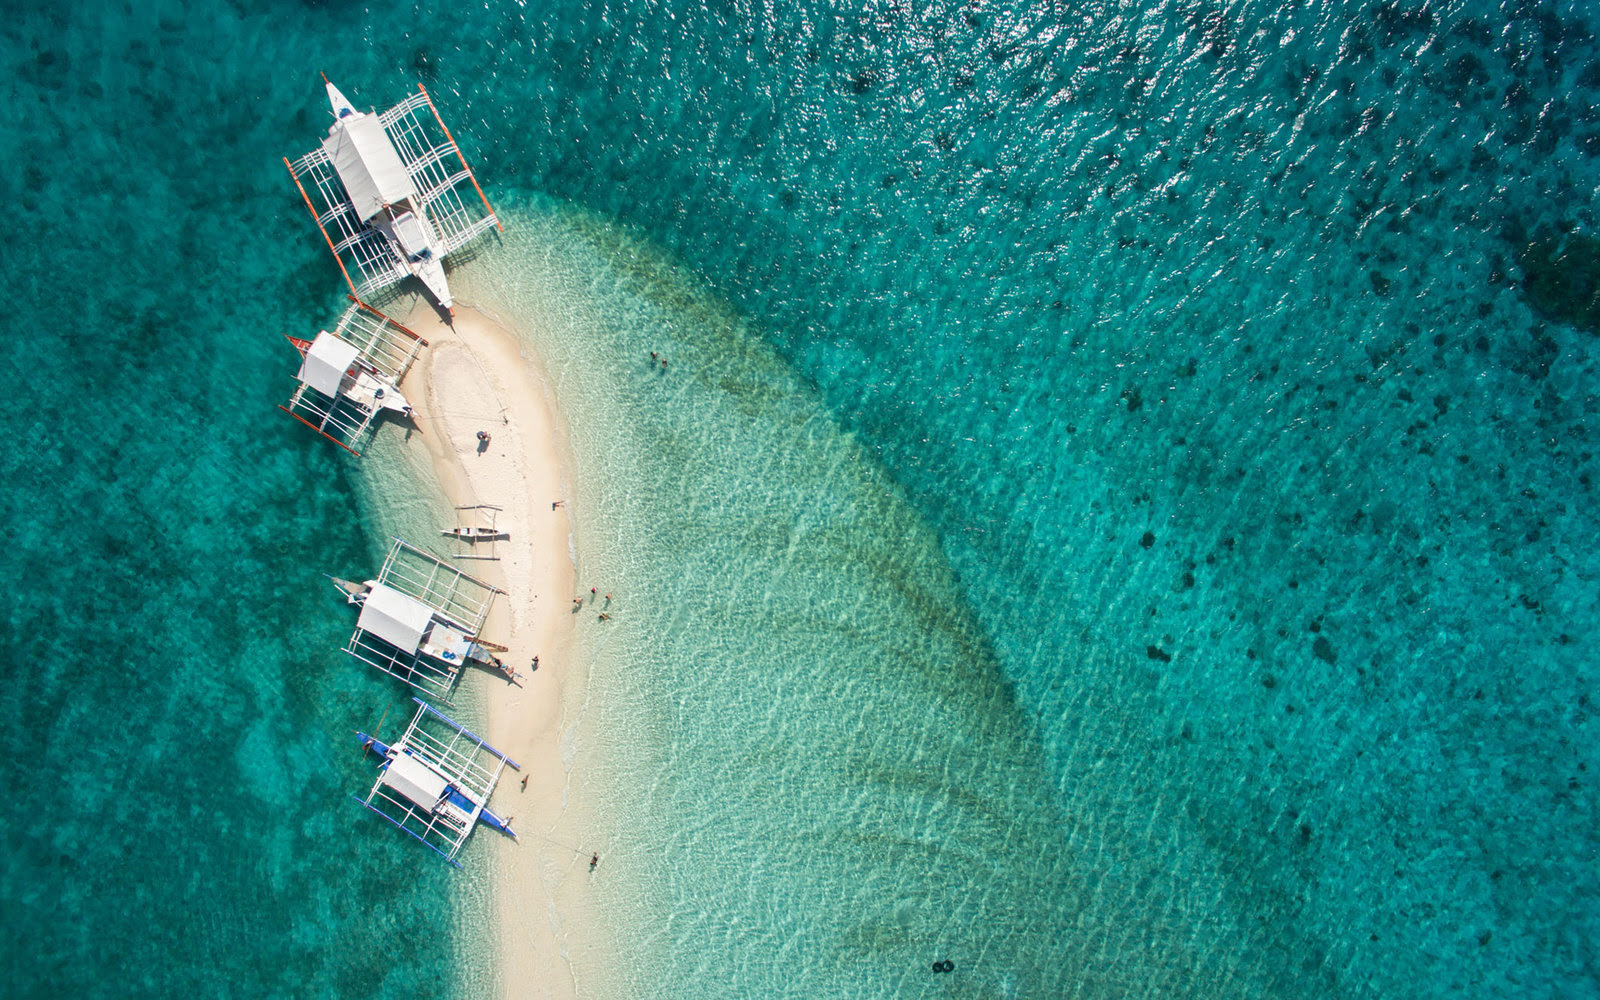 Sumilon Island is a coral island off the coast of Bancogon, Oslob, Cebu. It is the first marine protected area in the Philippines and is famous for its diving sites.